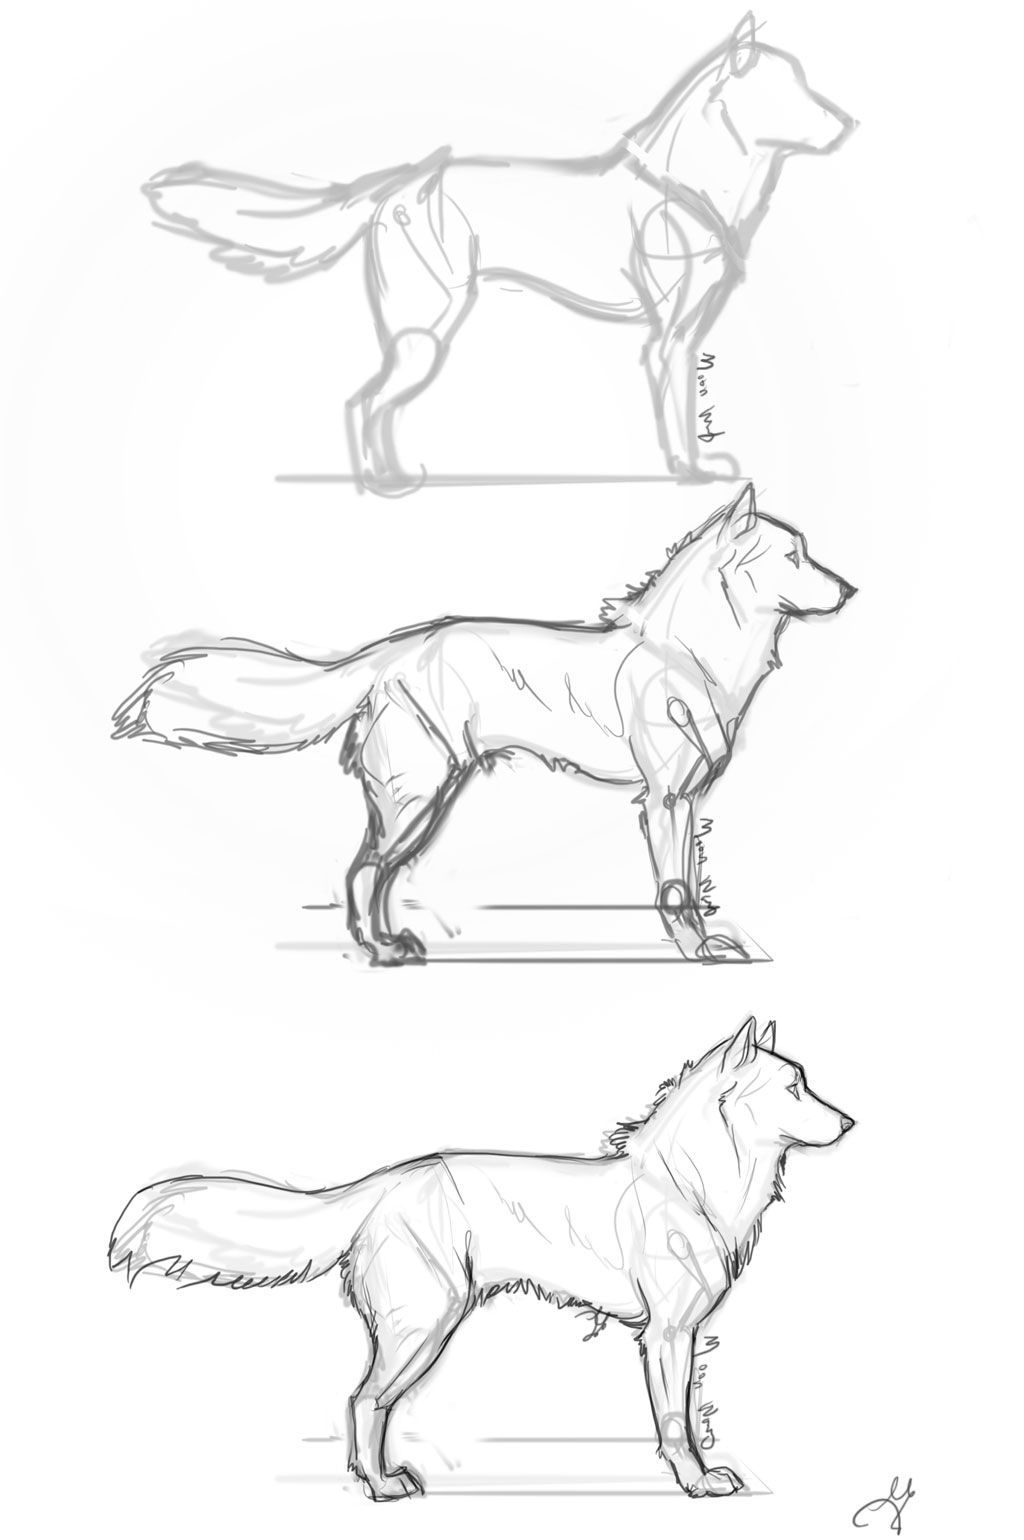 how to draw a realistic cheetah step by step drawing animals step by step realistic google search by step step draw realistic cheetah to how a